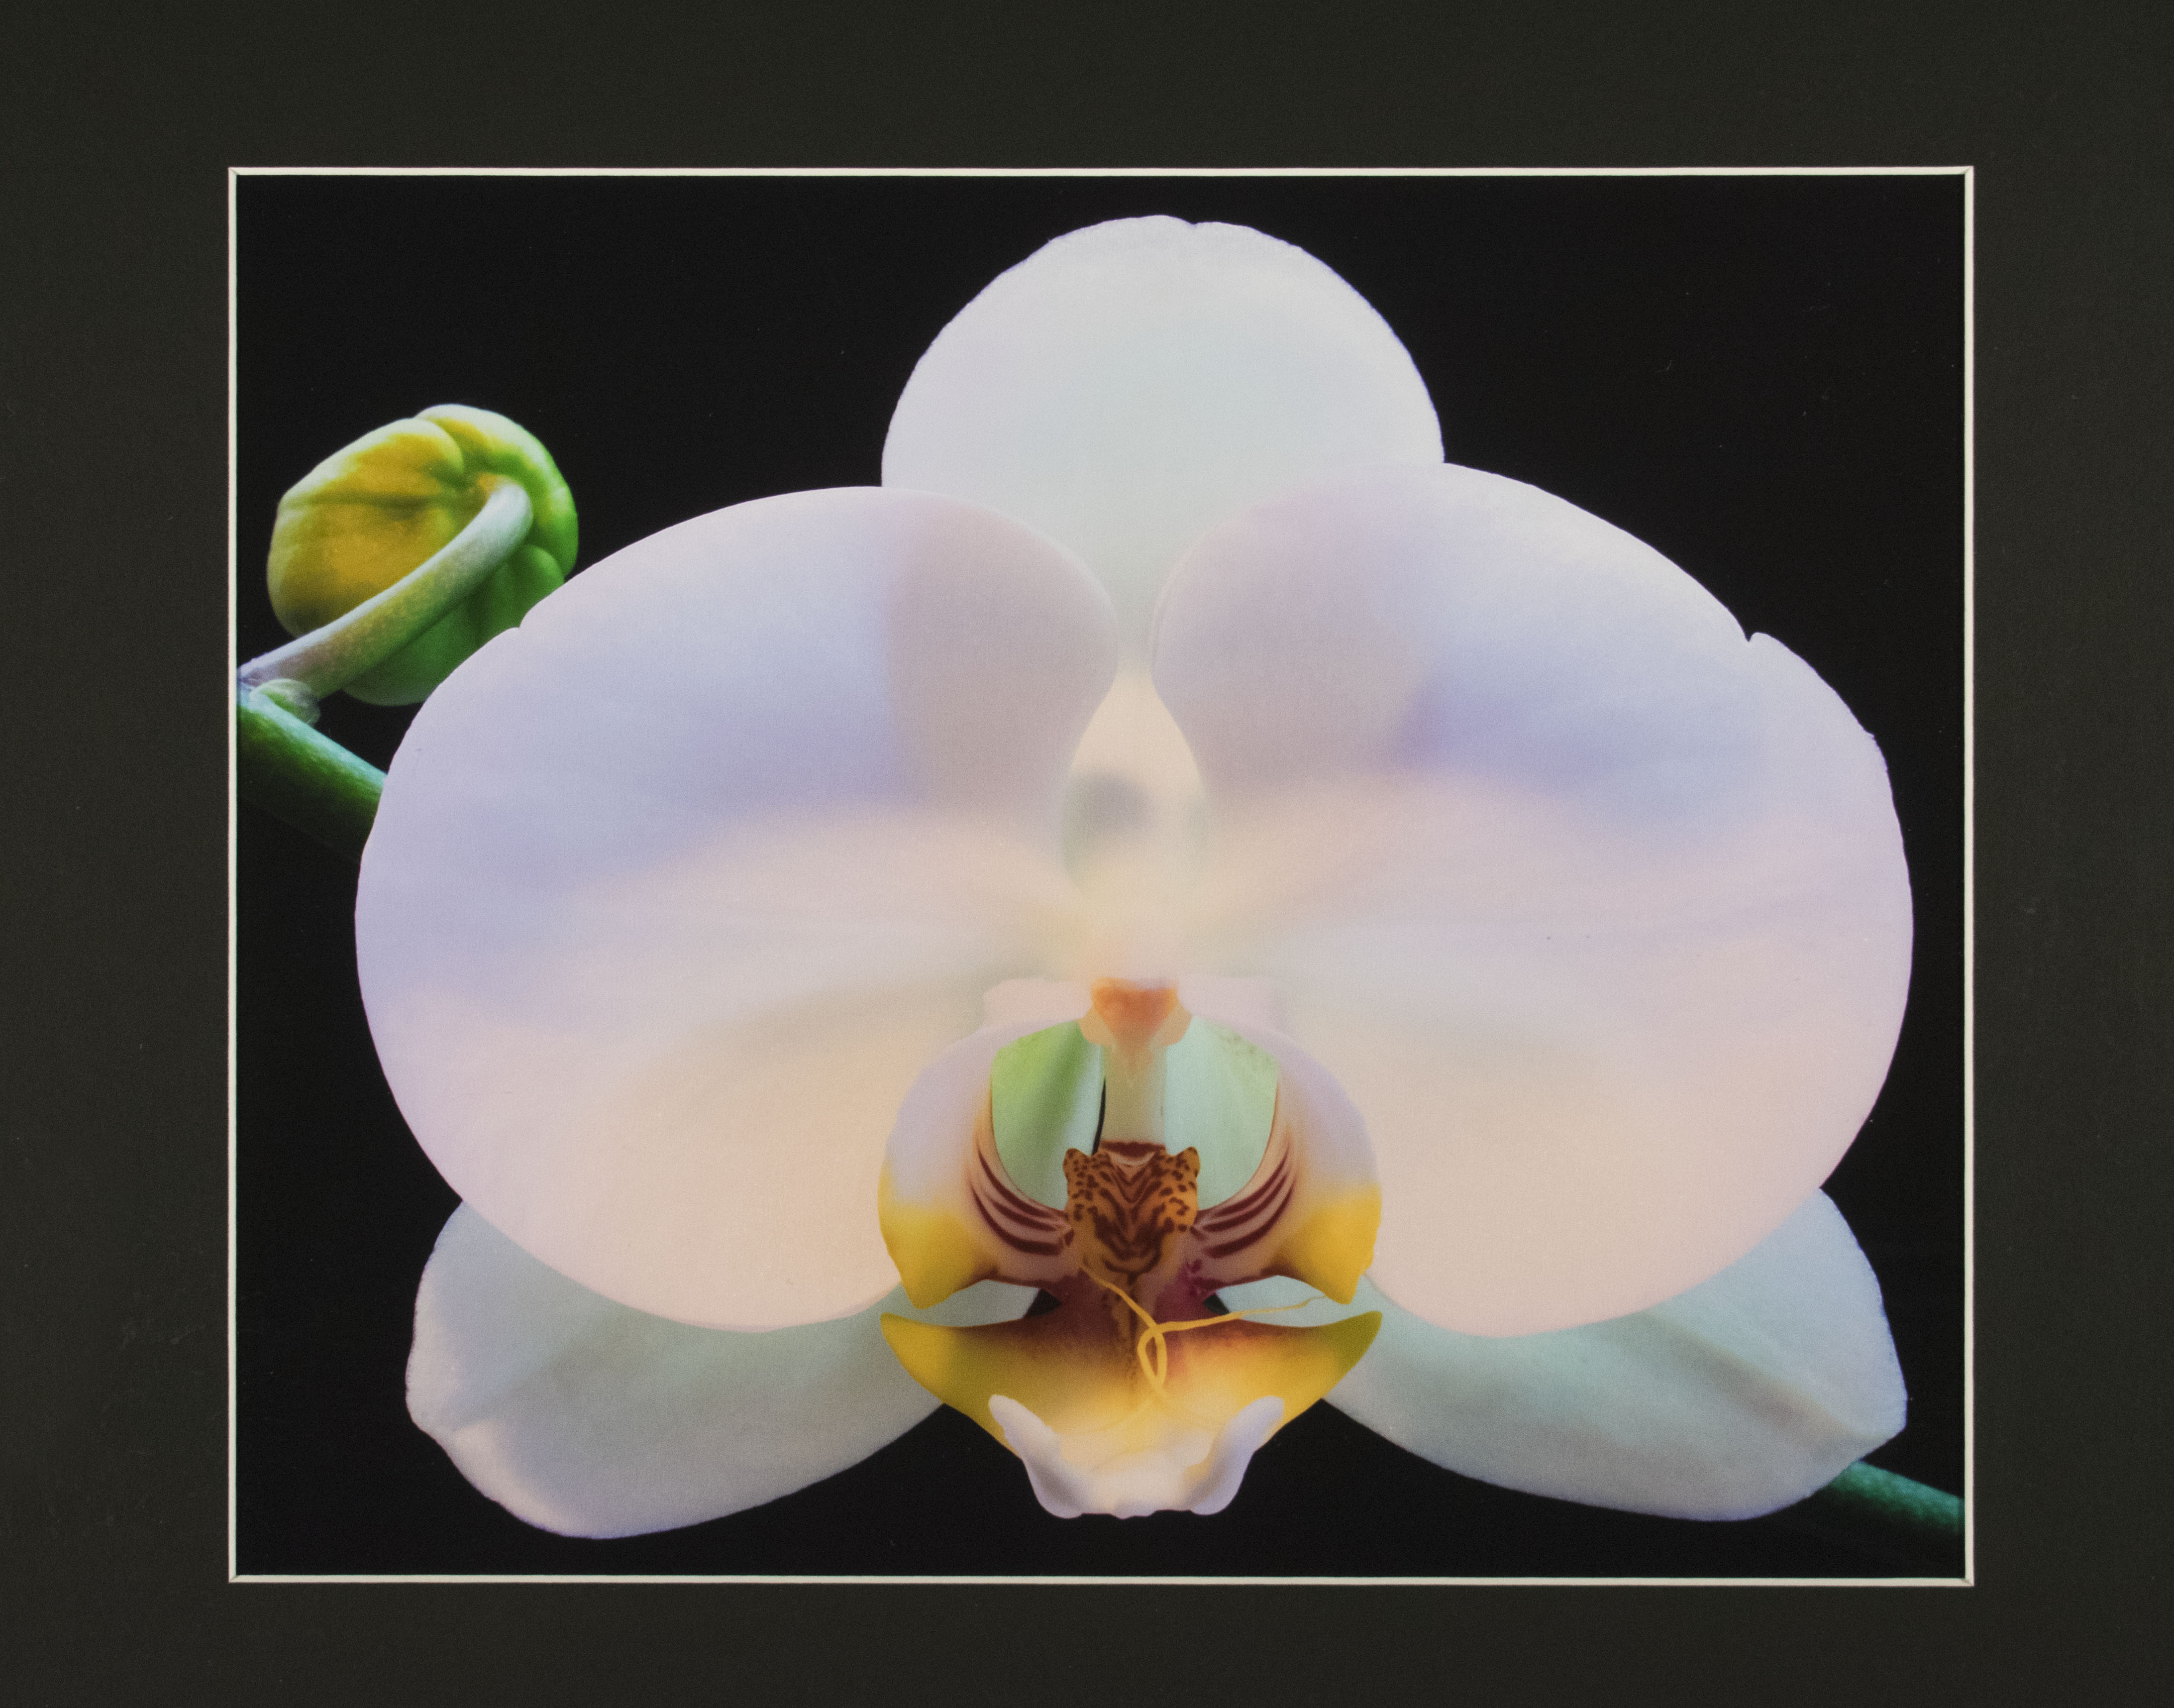 photograph of an orchid